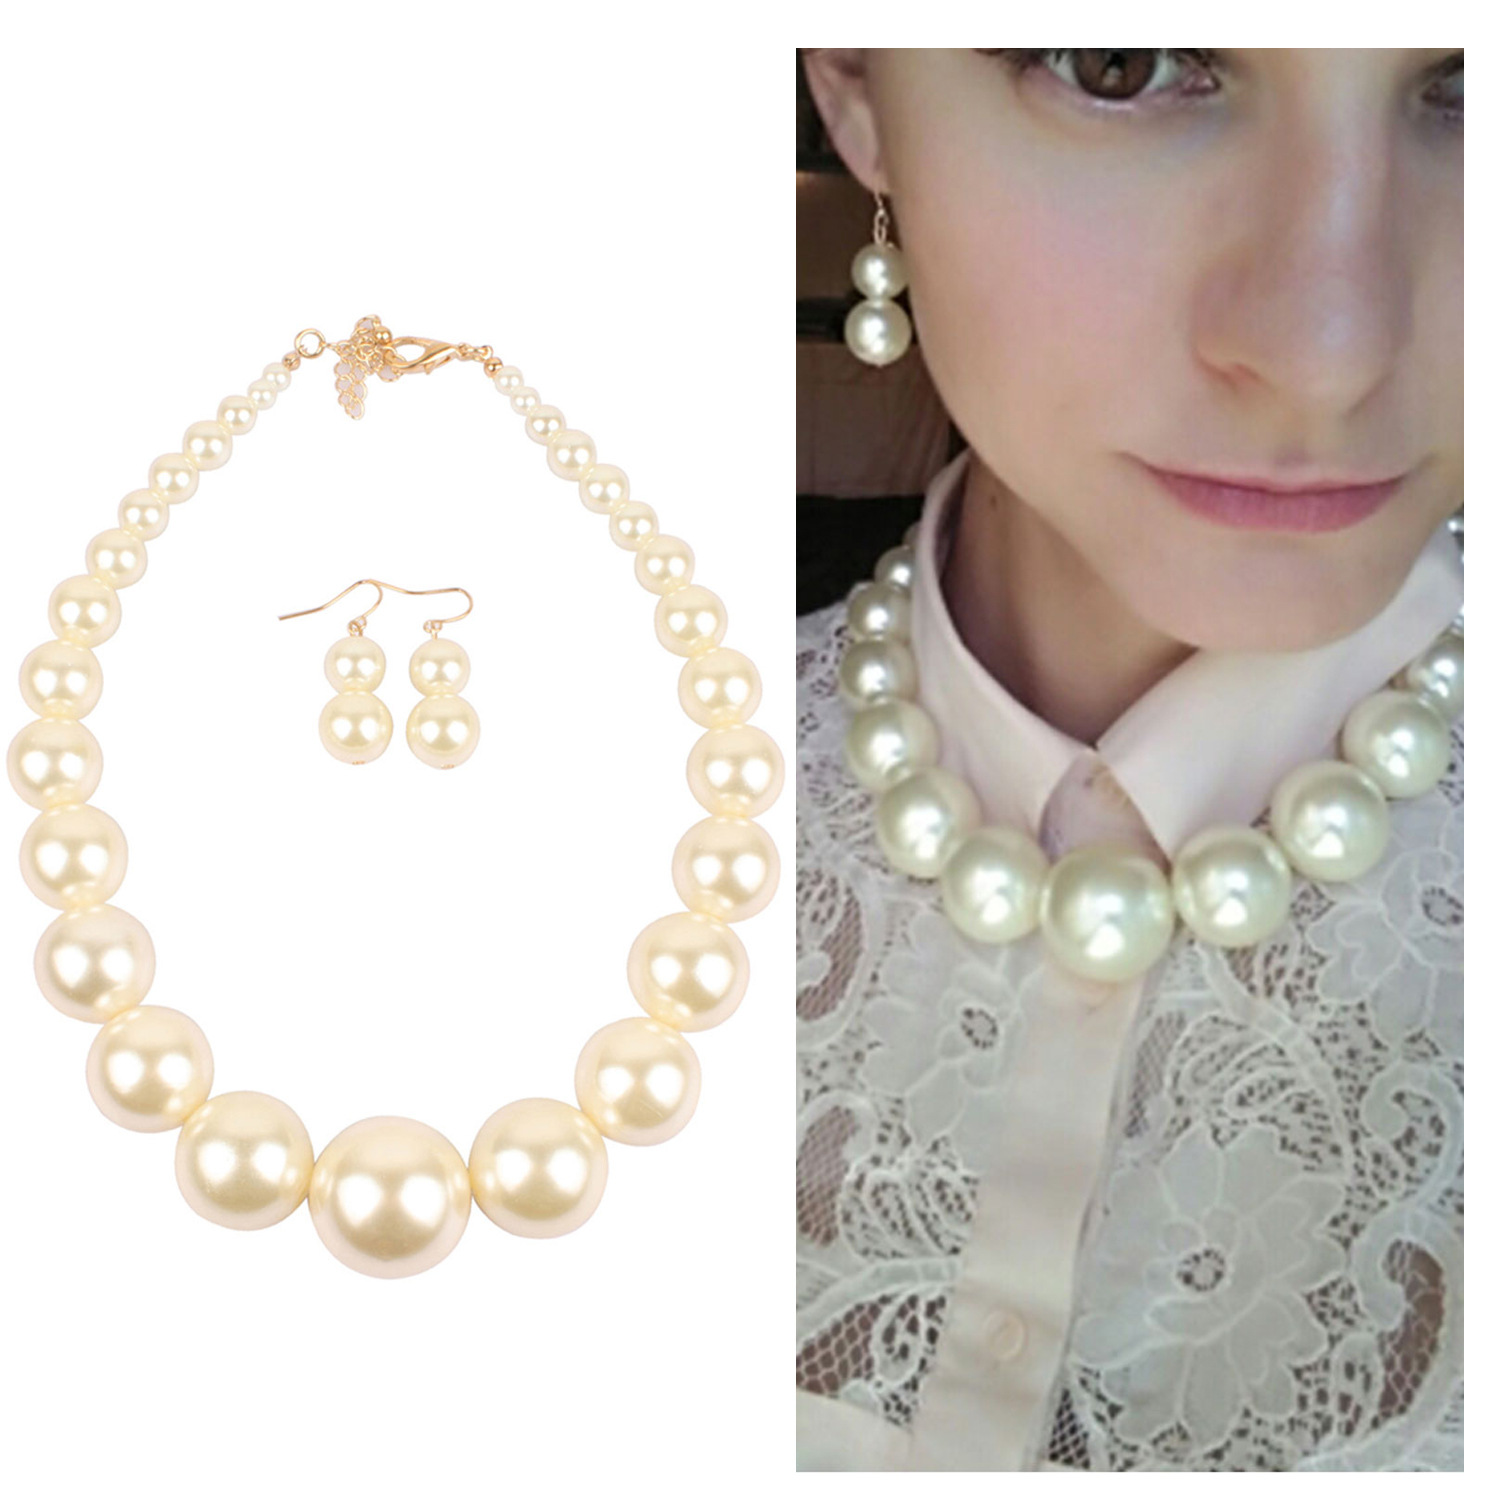 Big Pearl Necklace Earrings Bridal Jewelry Set for Women Clear Crystal Elegant Wedding Party Gift Fashion Costume Jewelry|Jewelry Sets|   - AliExpress